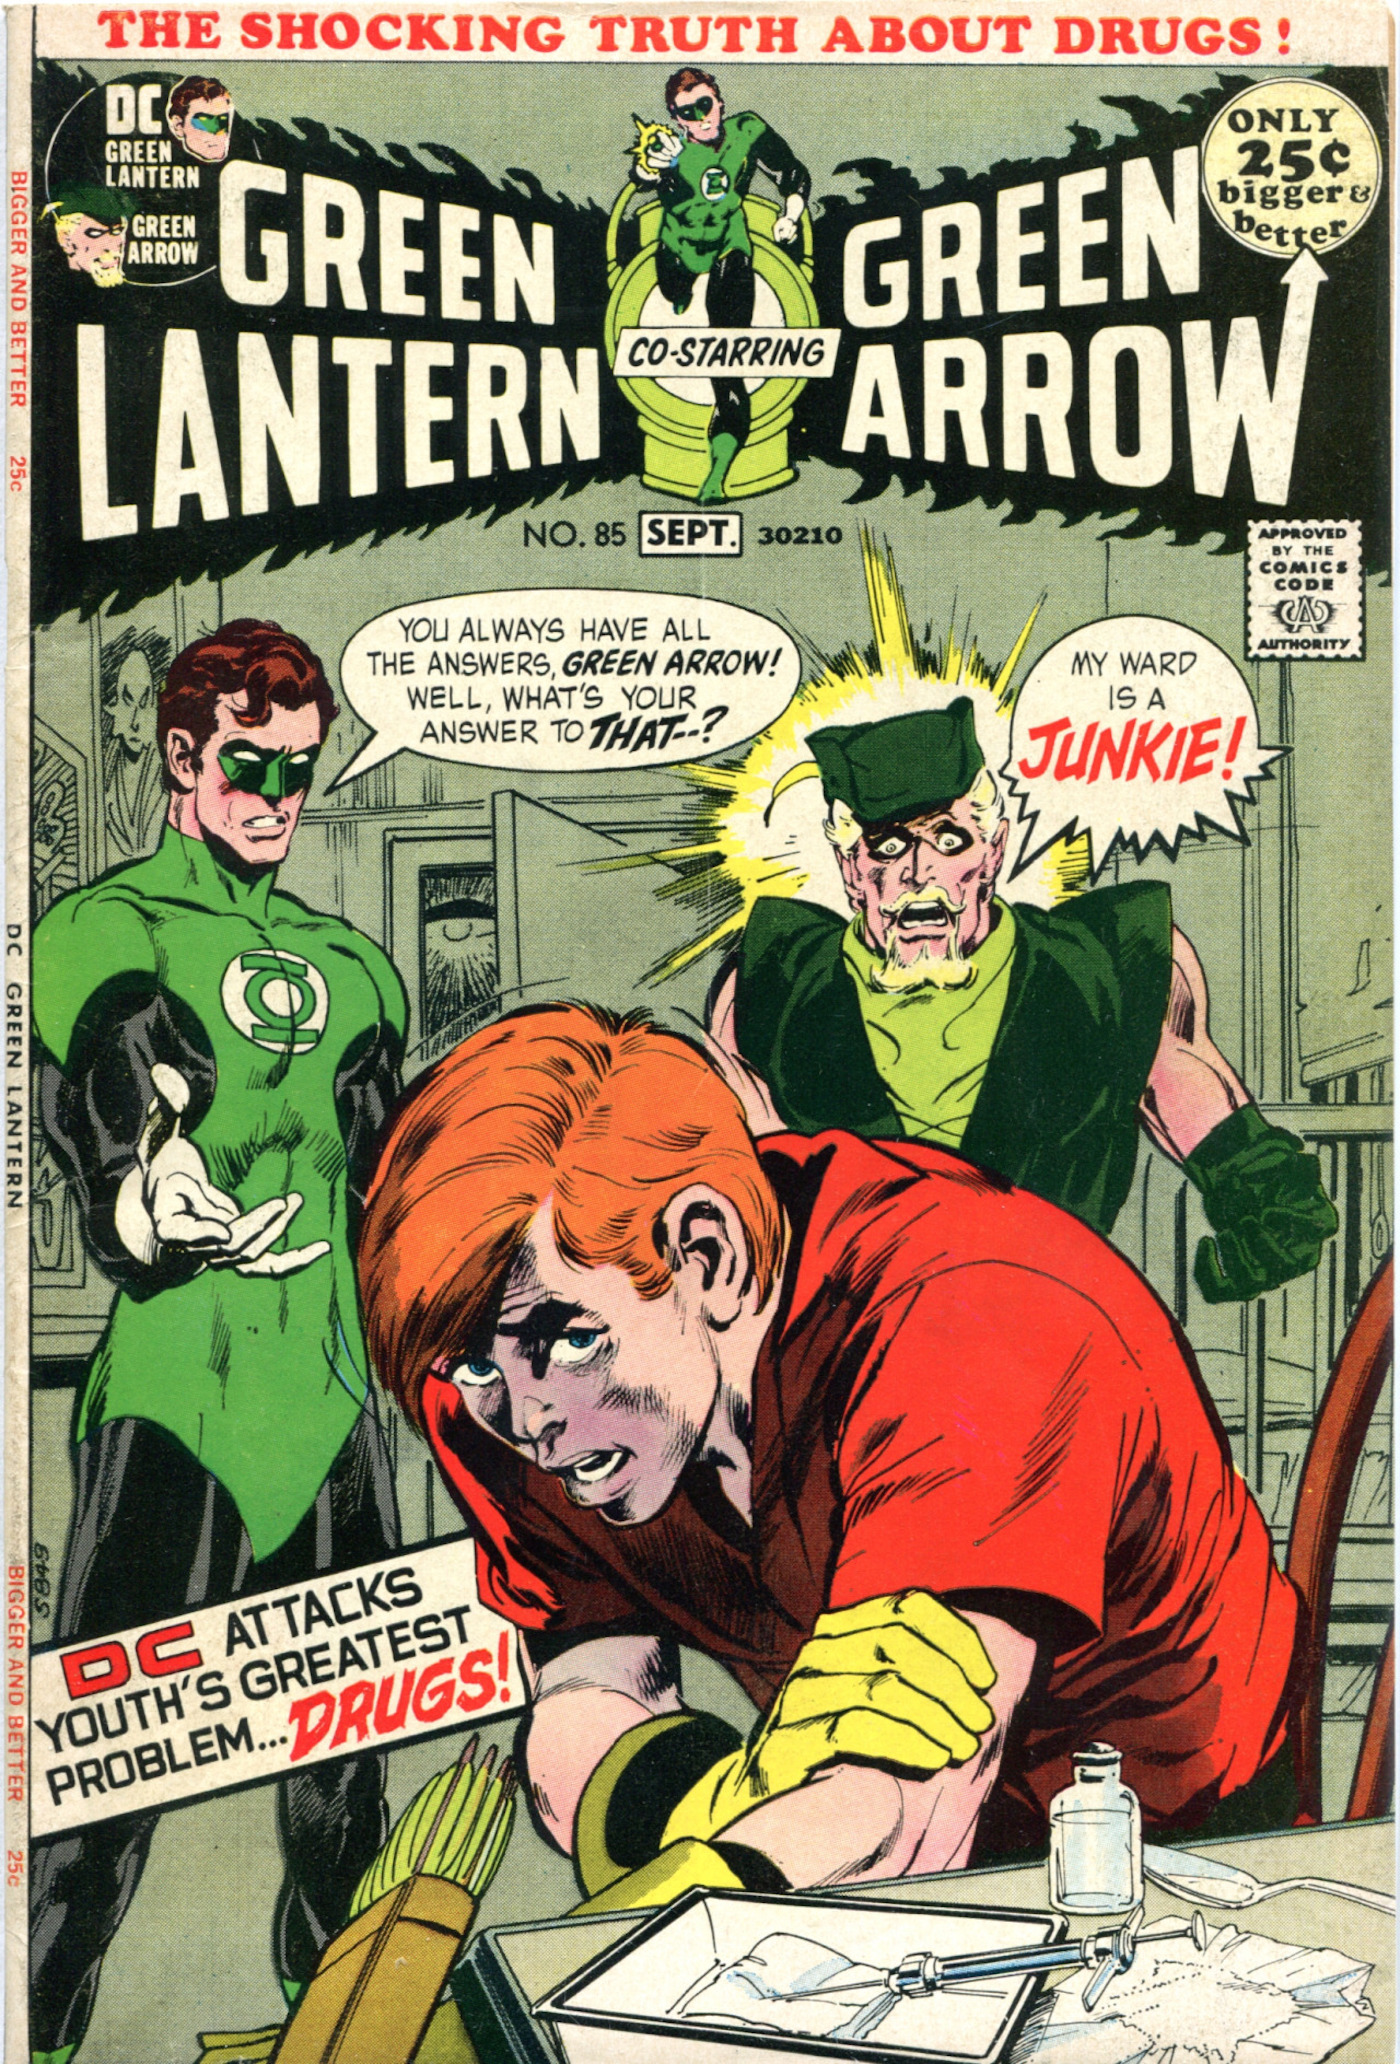 Green Lantern - Green Arrow #85 DC tackles the drug problem